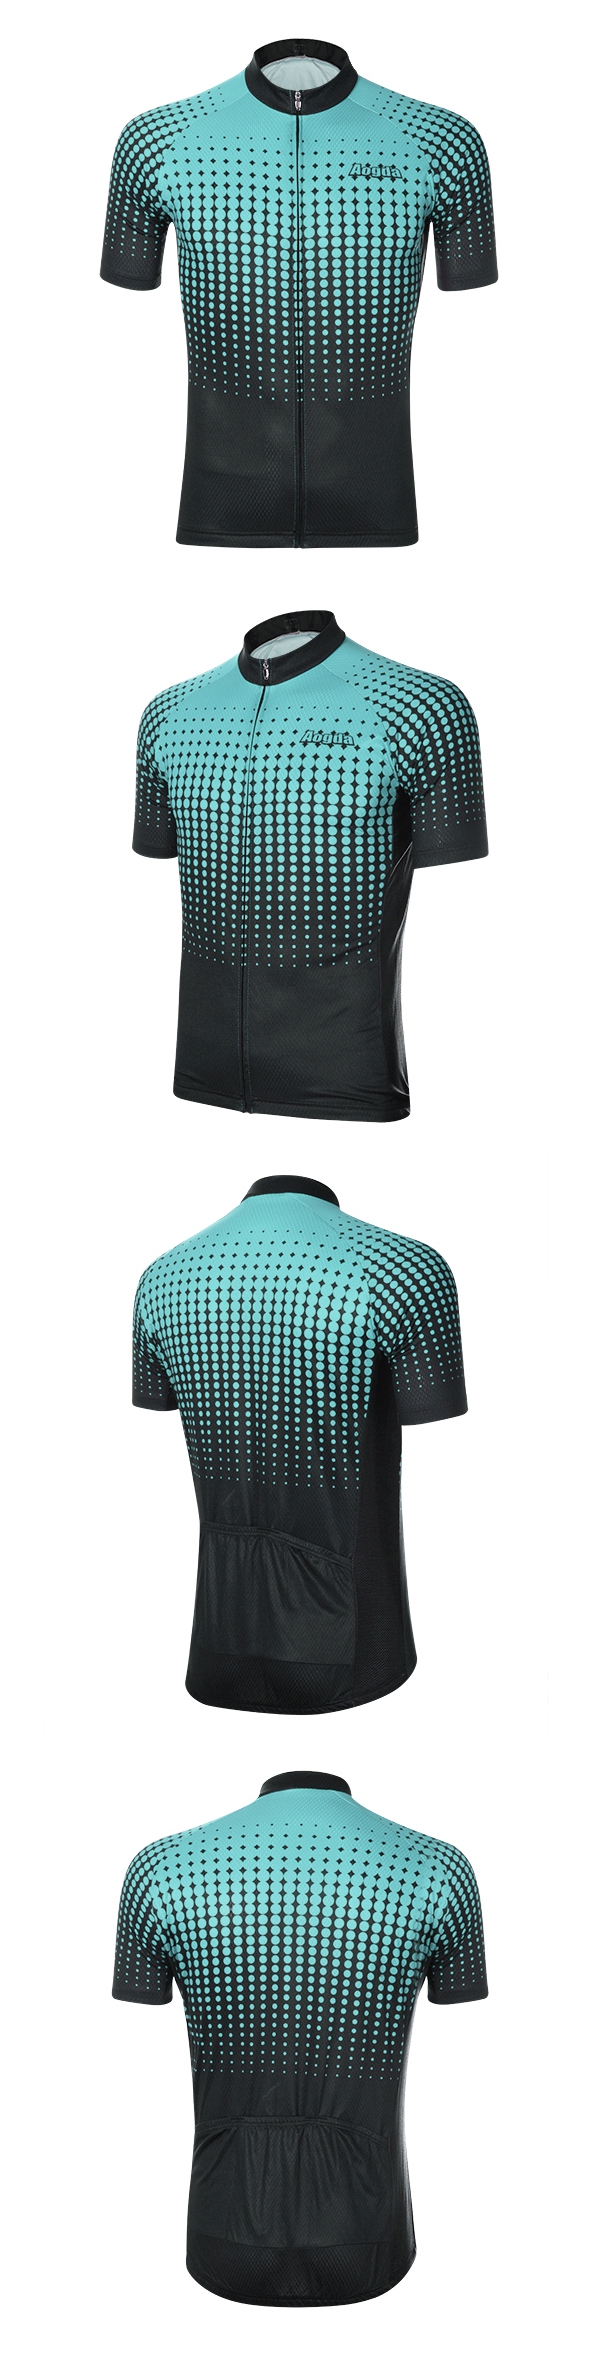 Unisex Outdoor Cycling Jersey Bike Short MTB Bicycle Clothing Skinsuit Breathable Wicking Summer